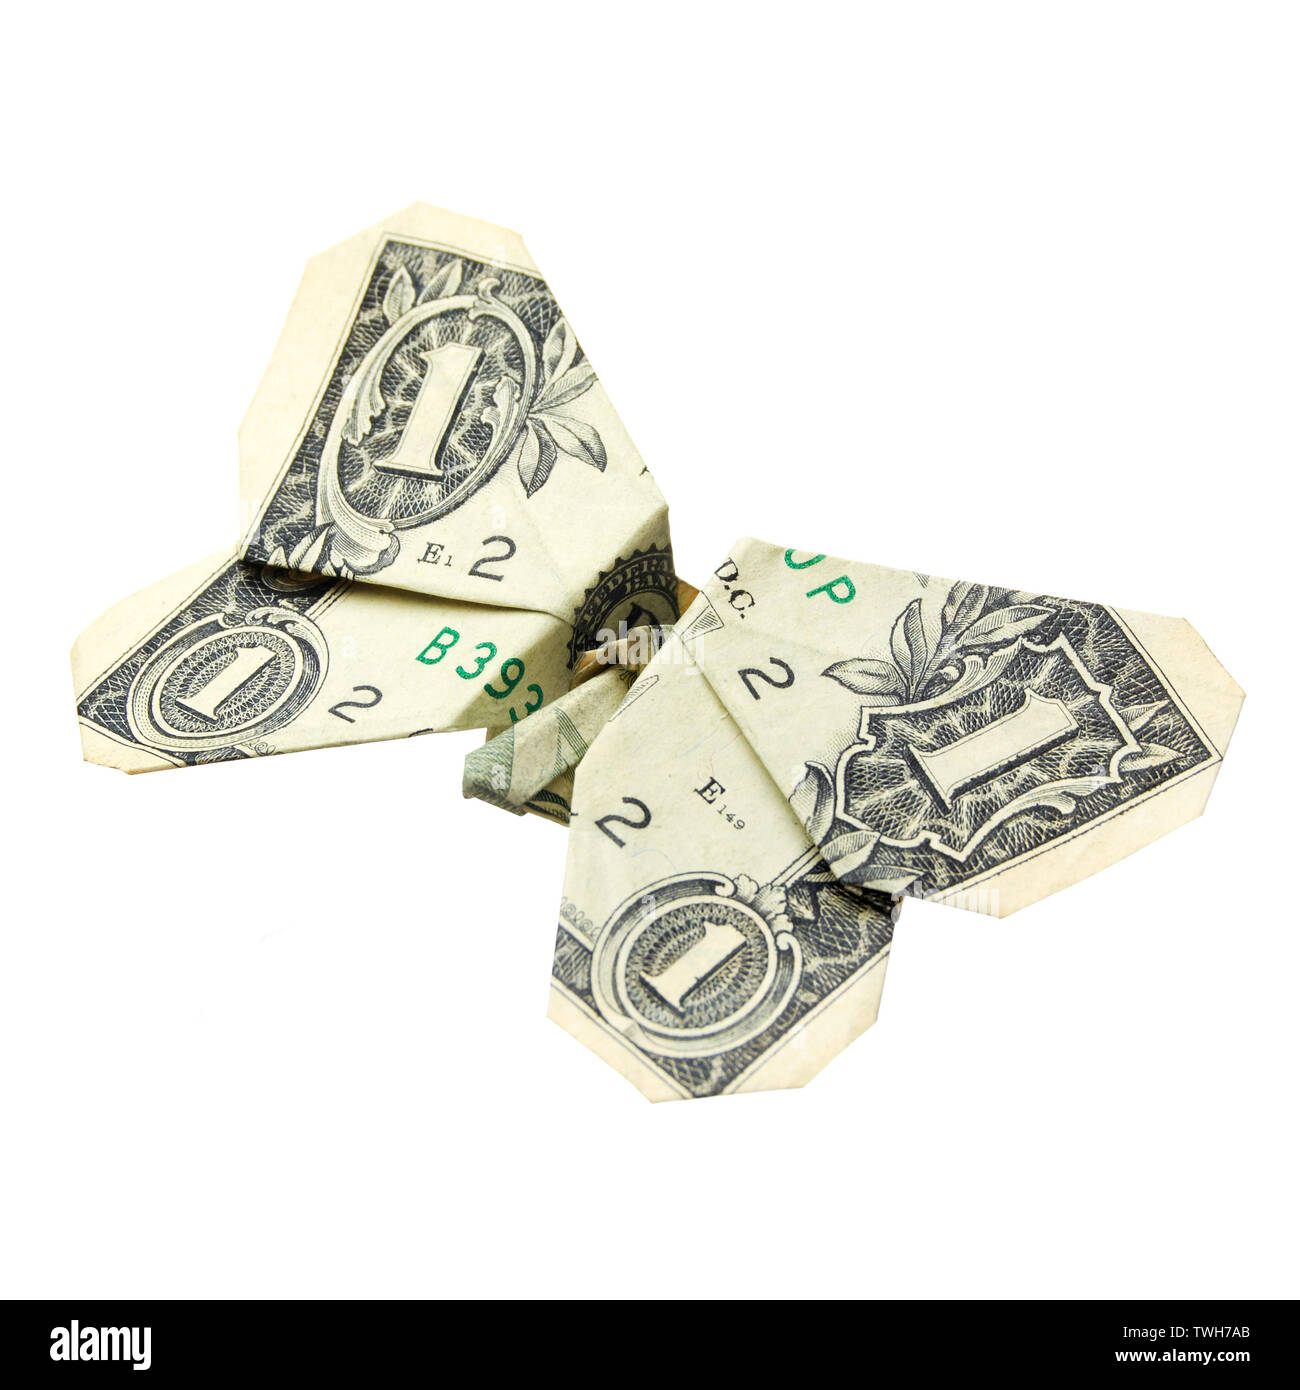 Easy Money Origami Buttefly Folding Instructions - How to Make ... | 1390x1300